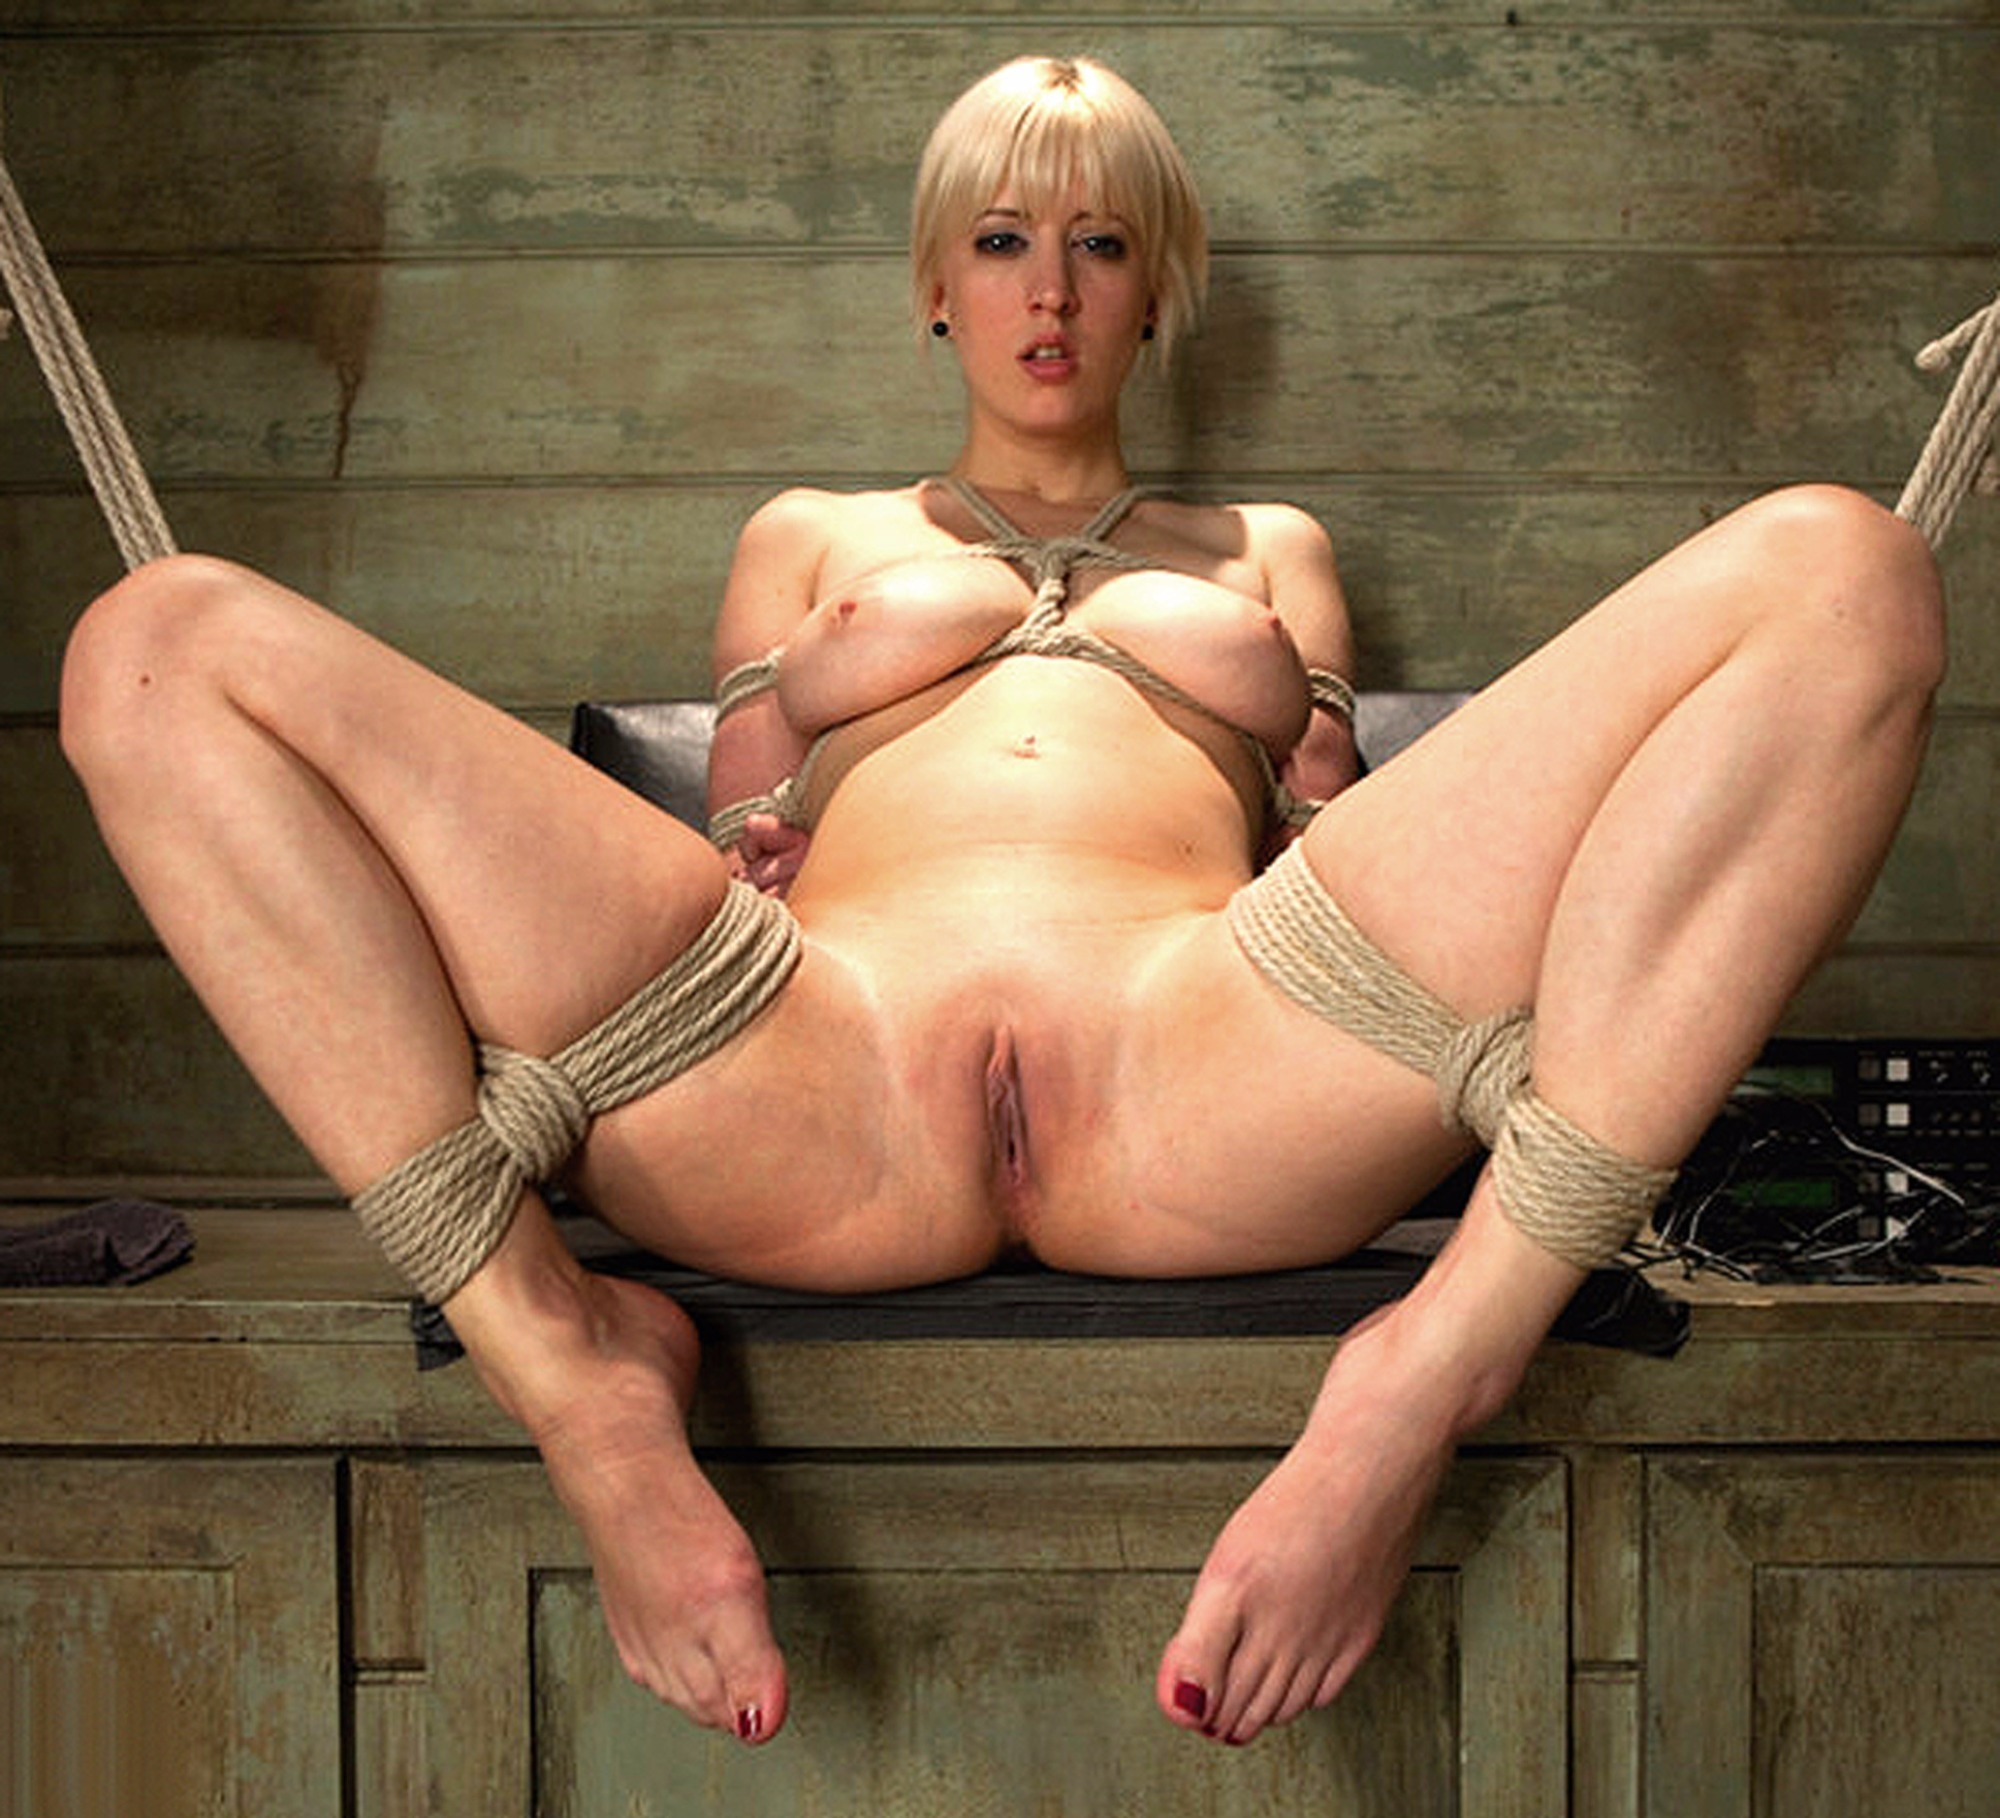 Gorgeously Sexy Busty Bondage Girl Phoenix Marie Loses Her Black Lace Lingerie